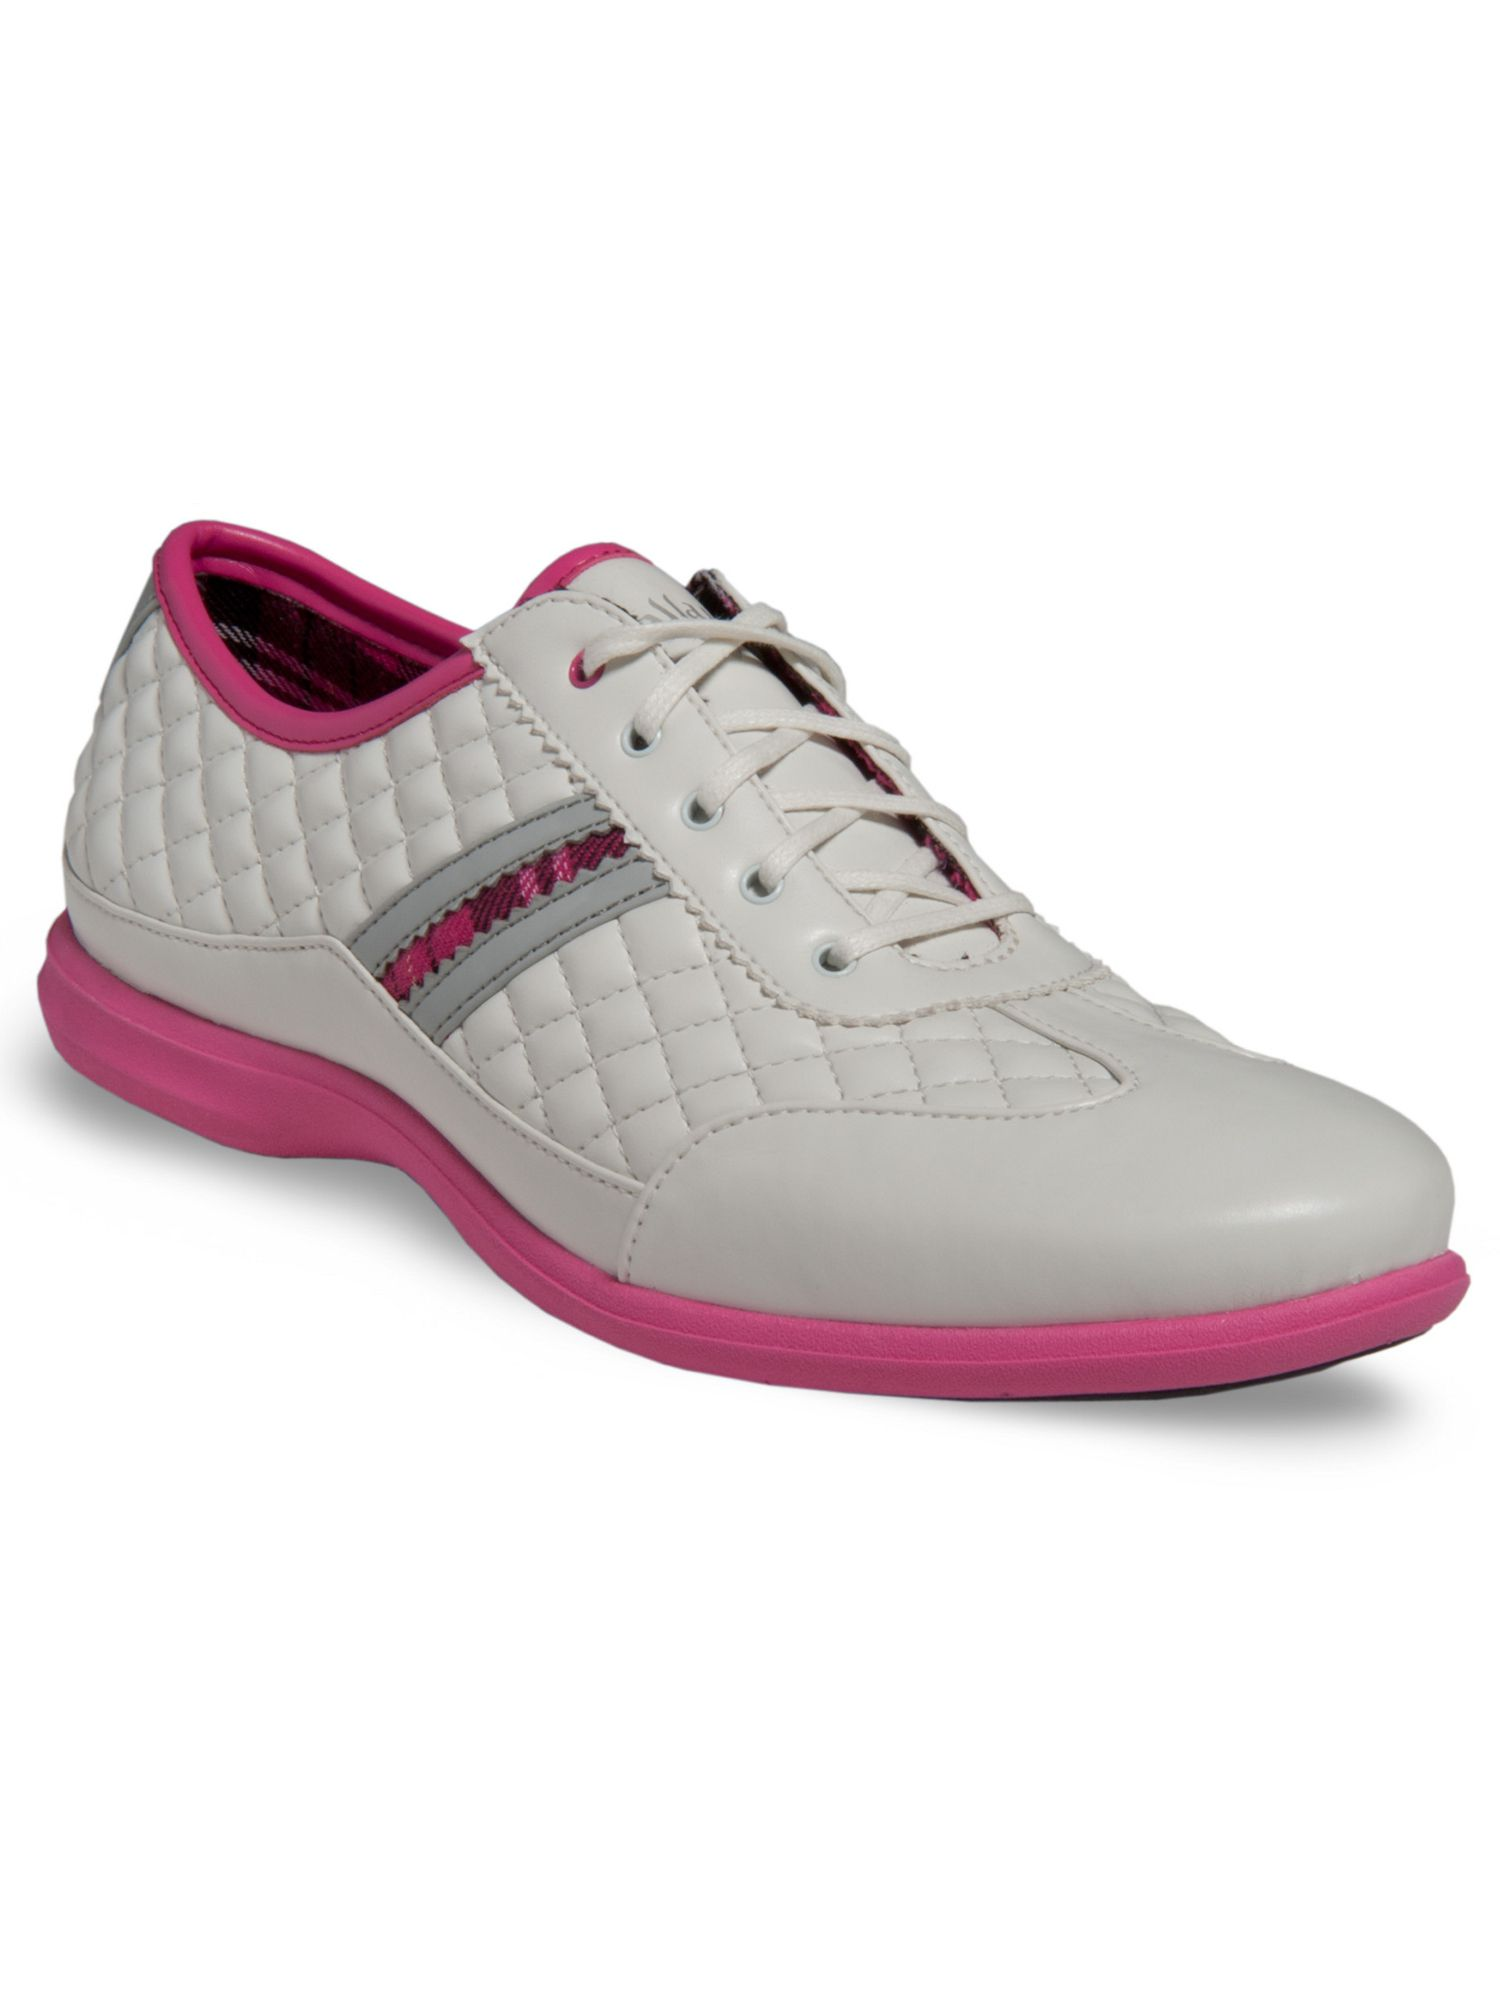 St kitts golf shoes